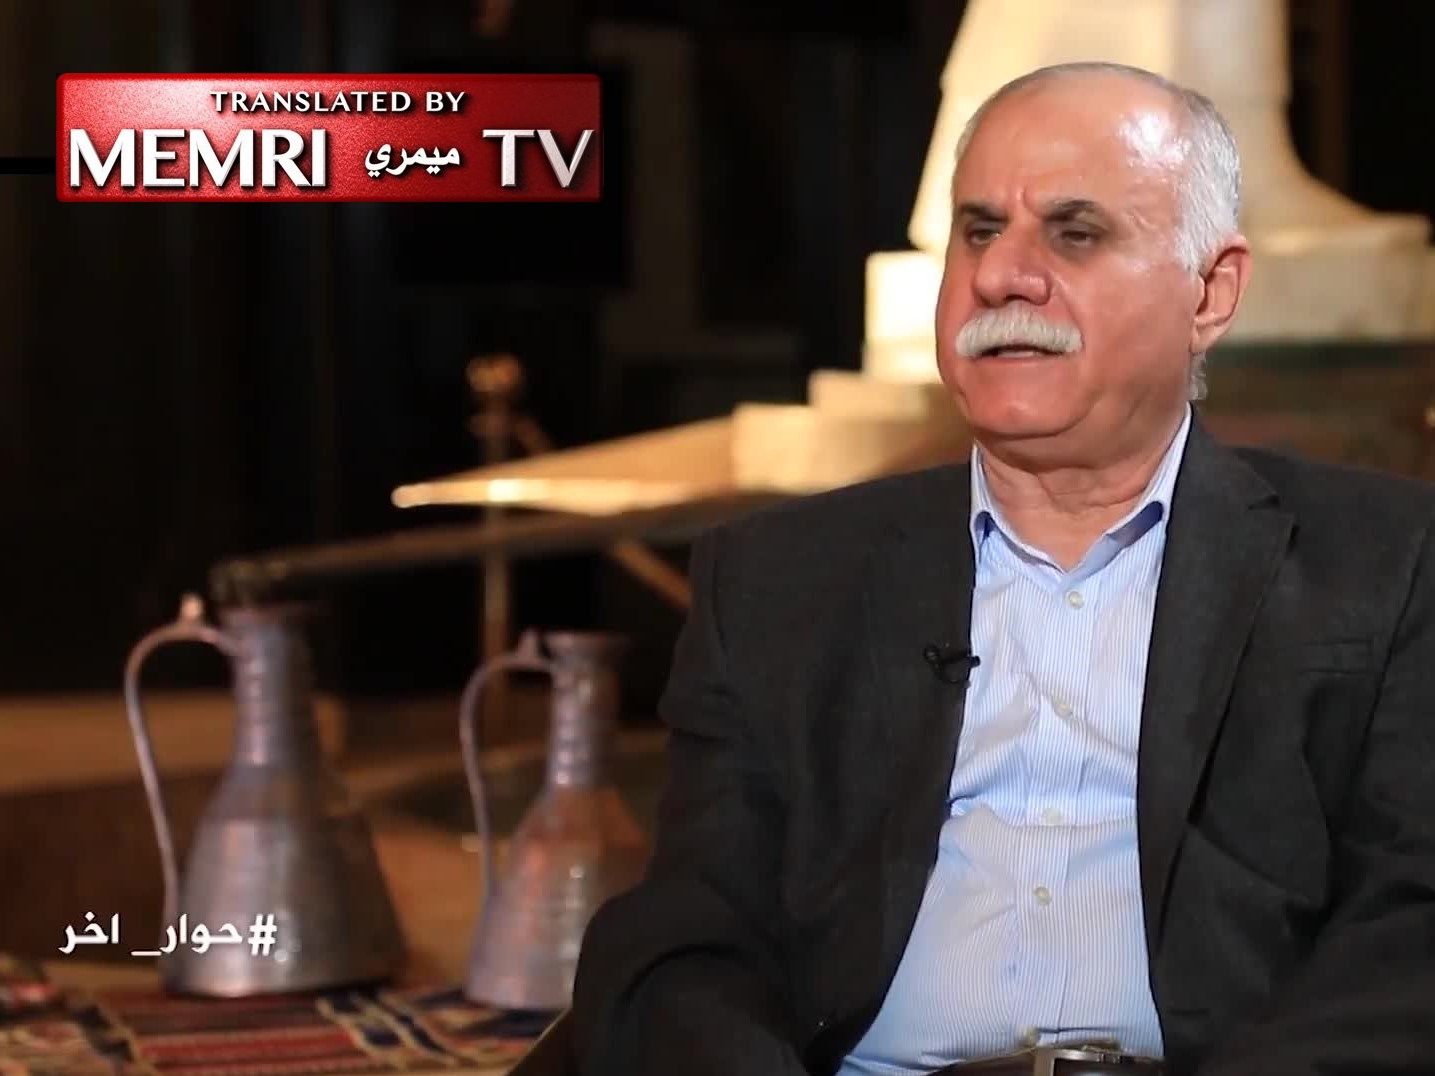 Palestinian Ambassador to Iraq Ahmed 'Aql: The Jews Are Not a People; Iraqi Militias Welcome to Liberate Palestine